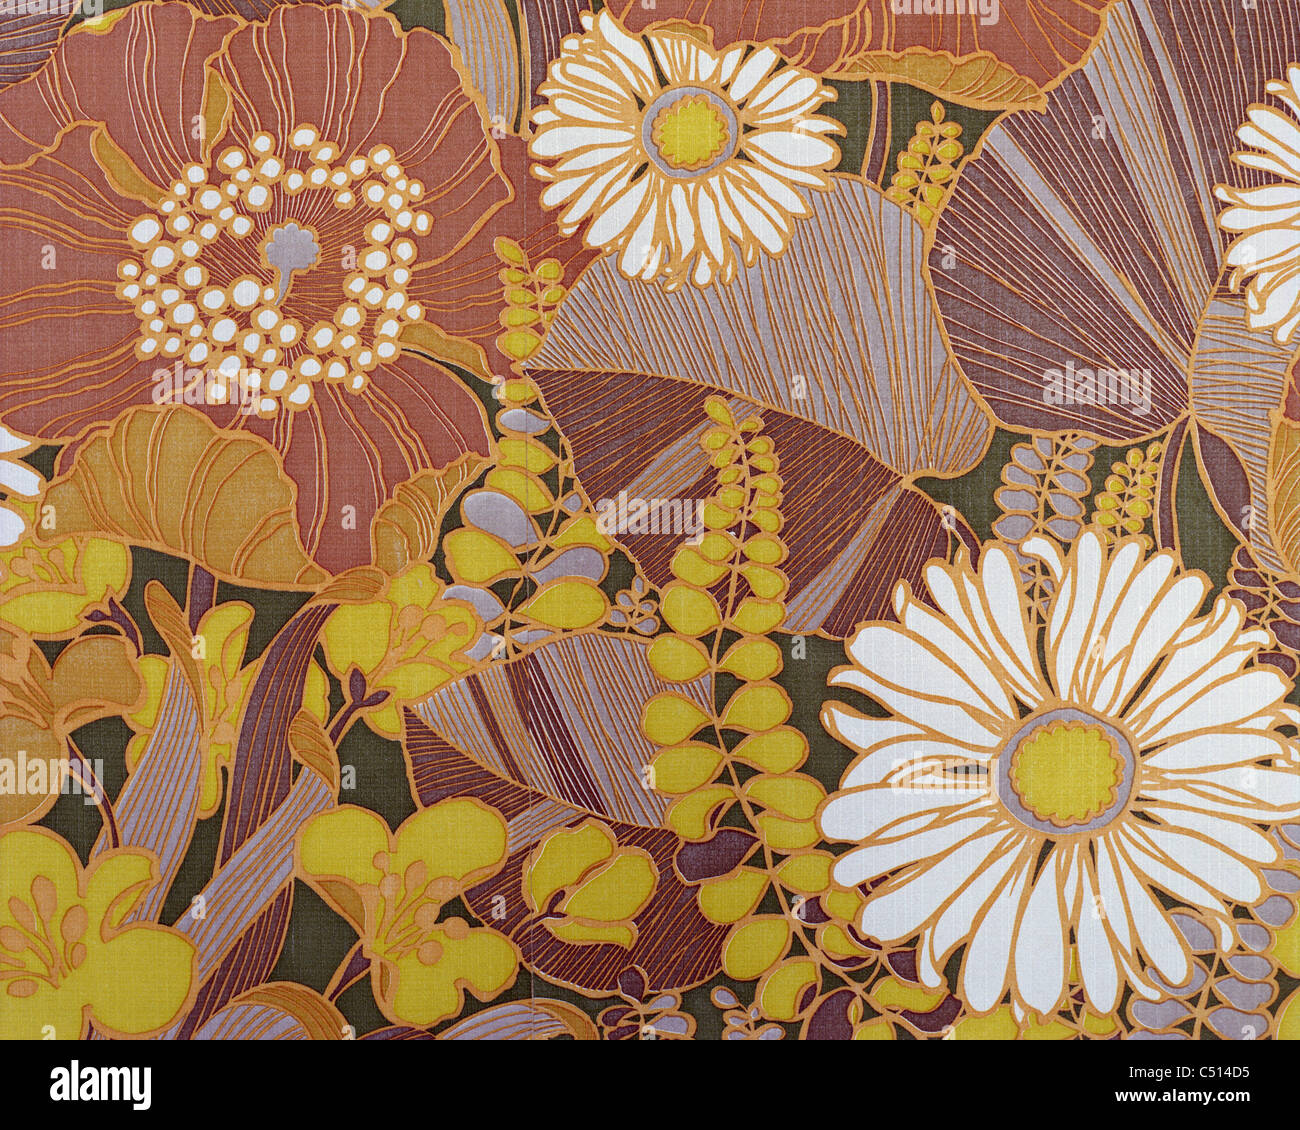 Floral pattern - Stock Image